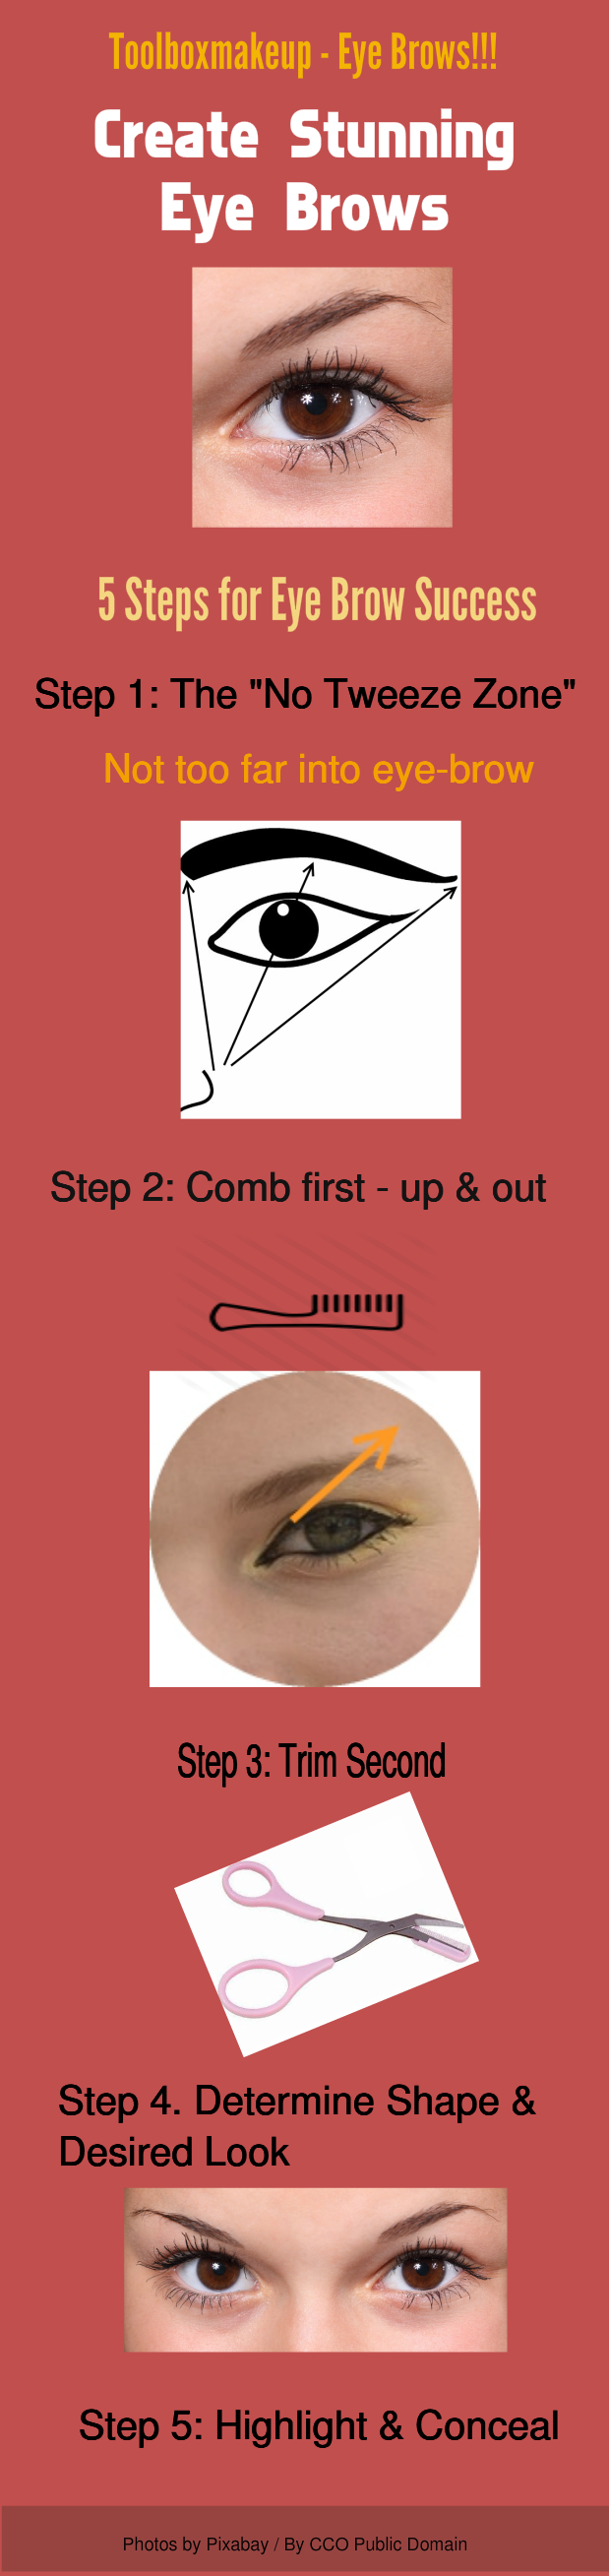 steps to creating beautiful eye brows for women infographic